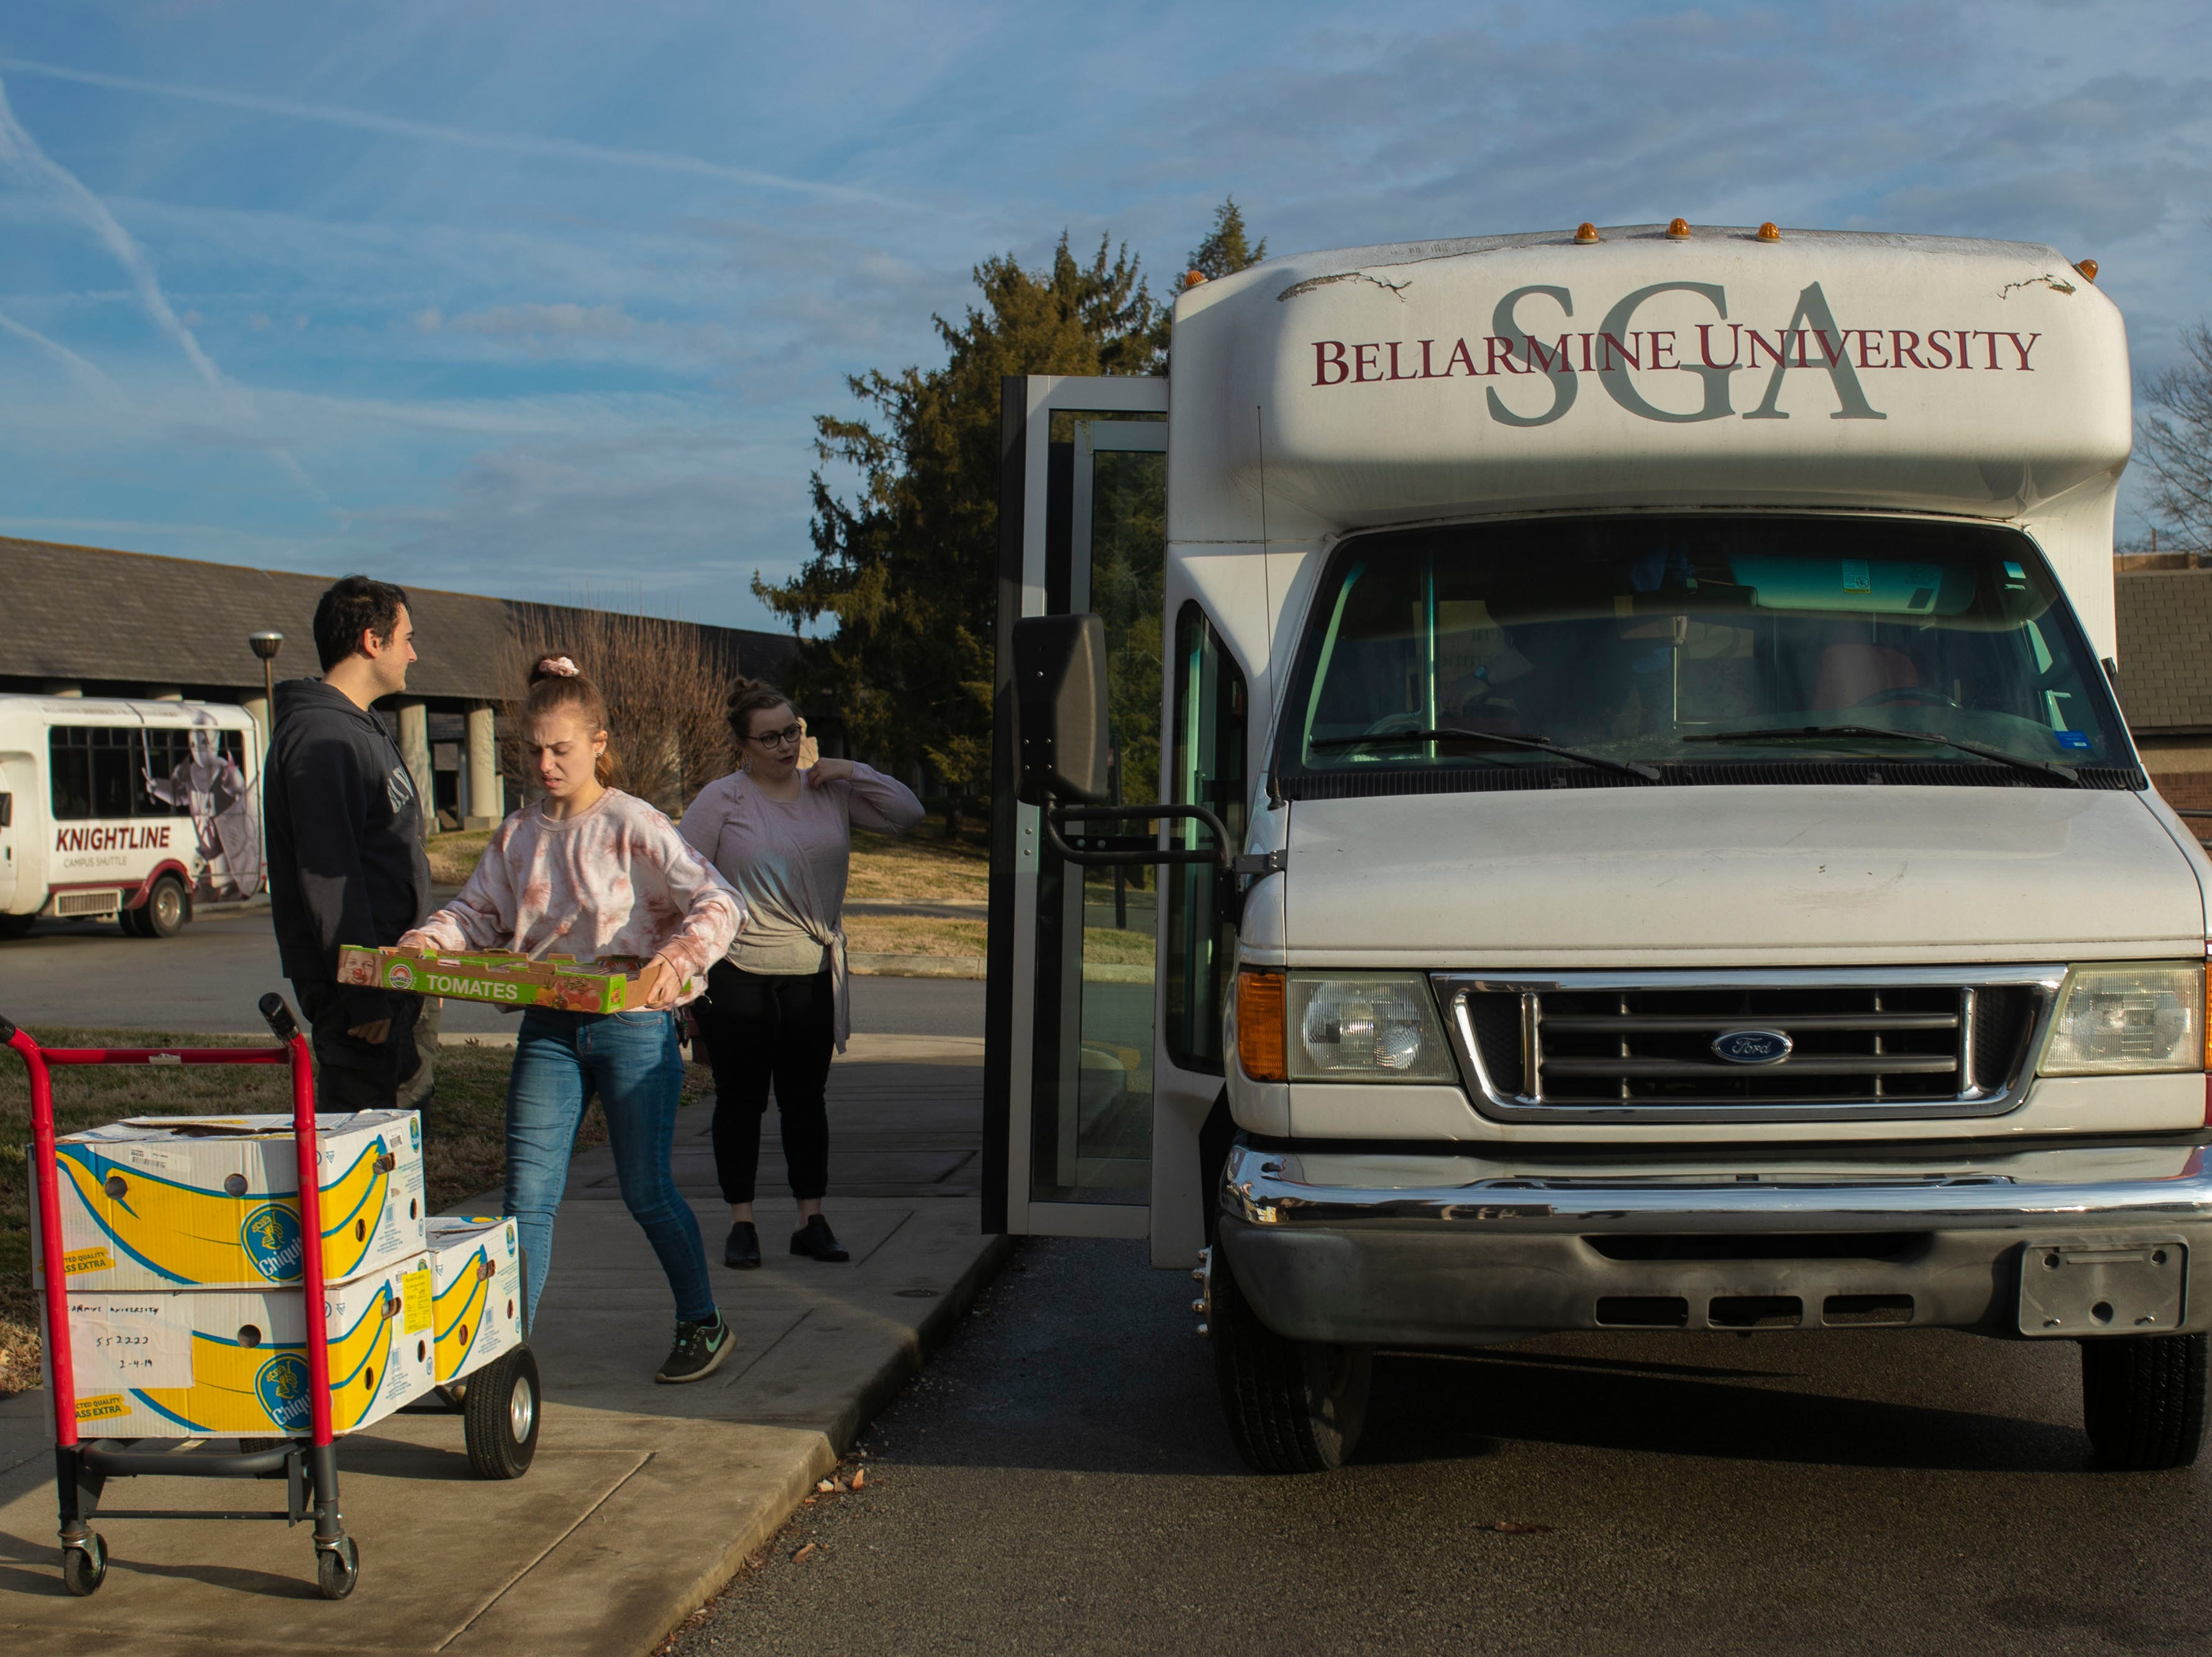 Bellarmine students unload food items picked up at the Dare to Care food bank to be added to the university's food pantry. The food pantry at Bellarmine is open to any students who may benefit from access to extra snacks and meals. Feb. 4, 2019